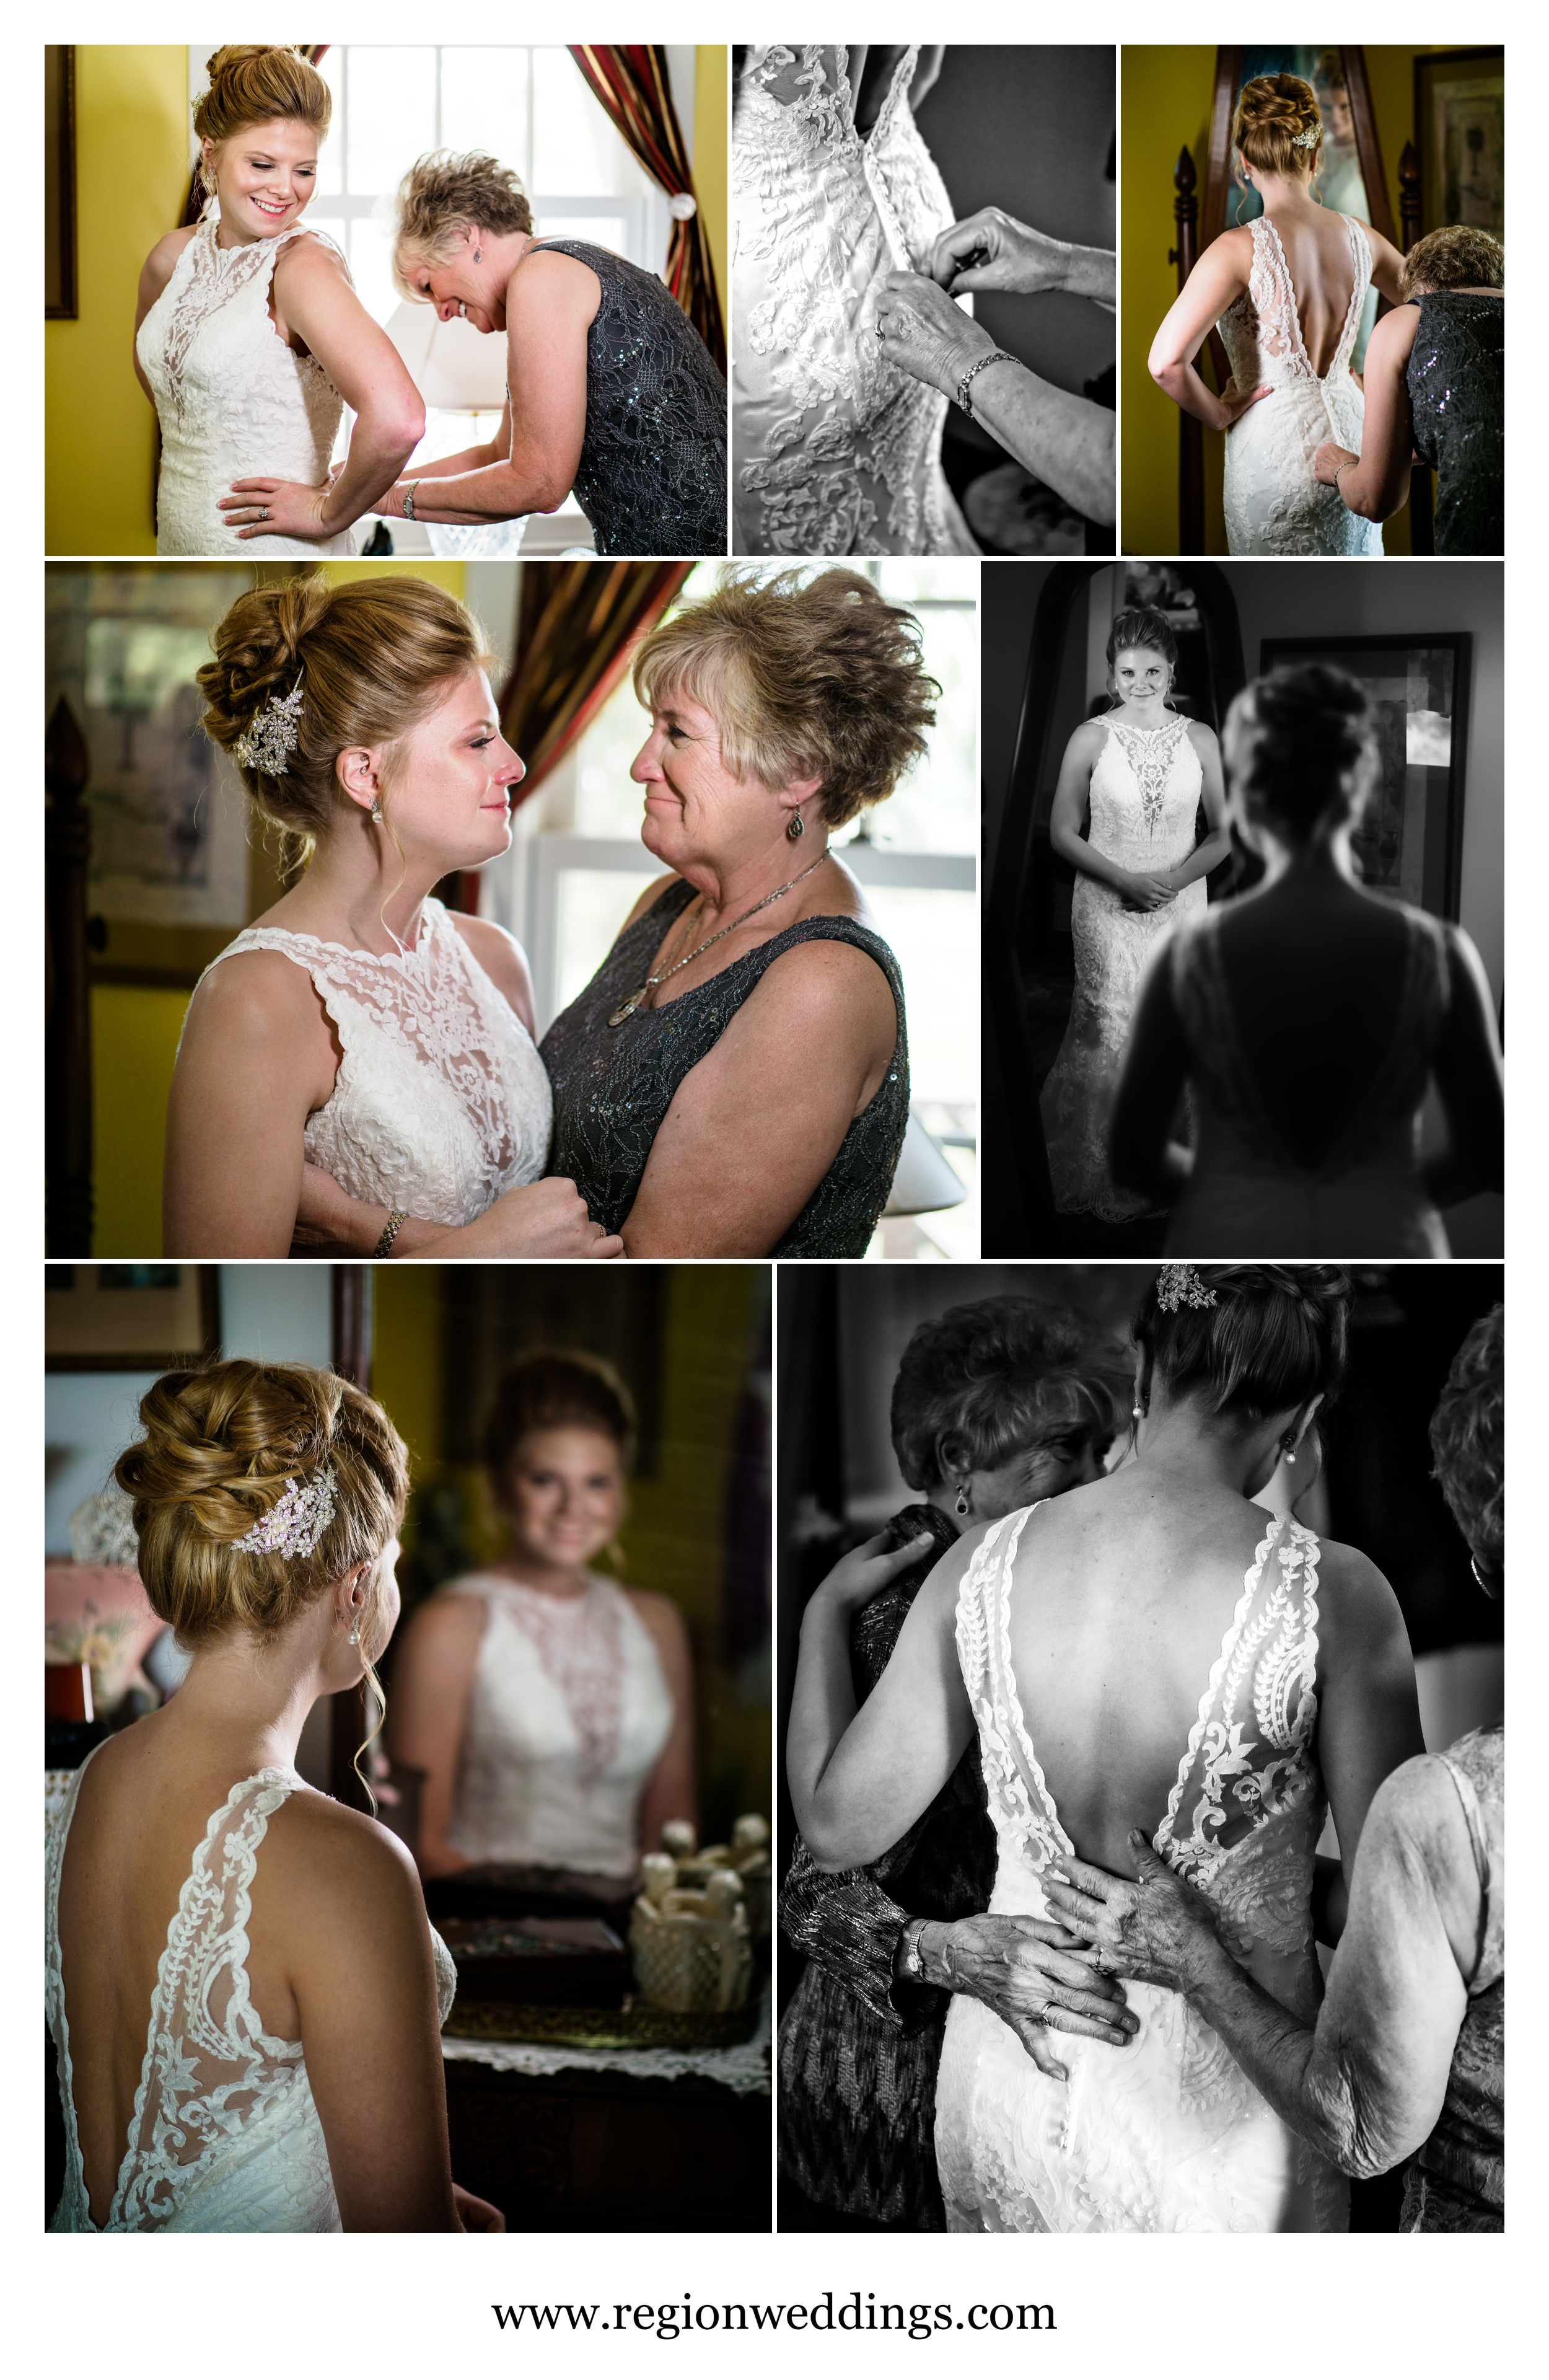 Mother of the bride assists her daughter on wedding day.